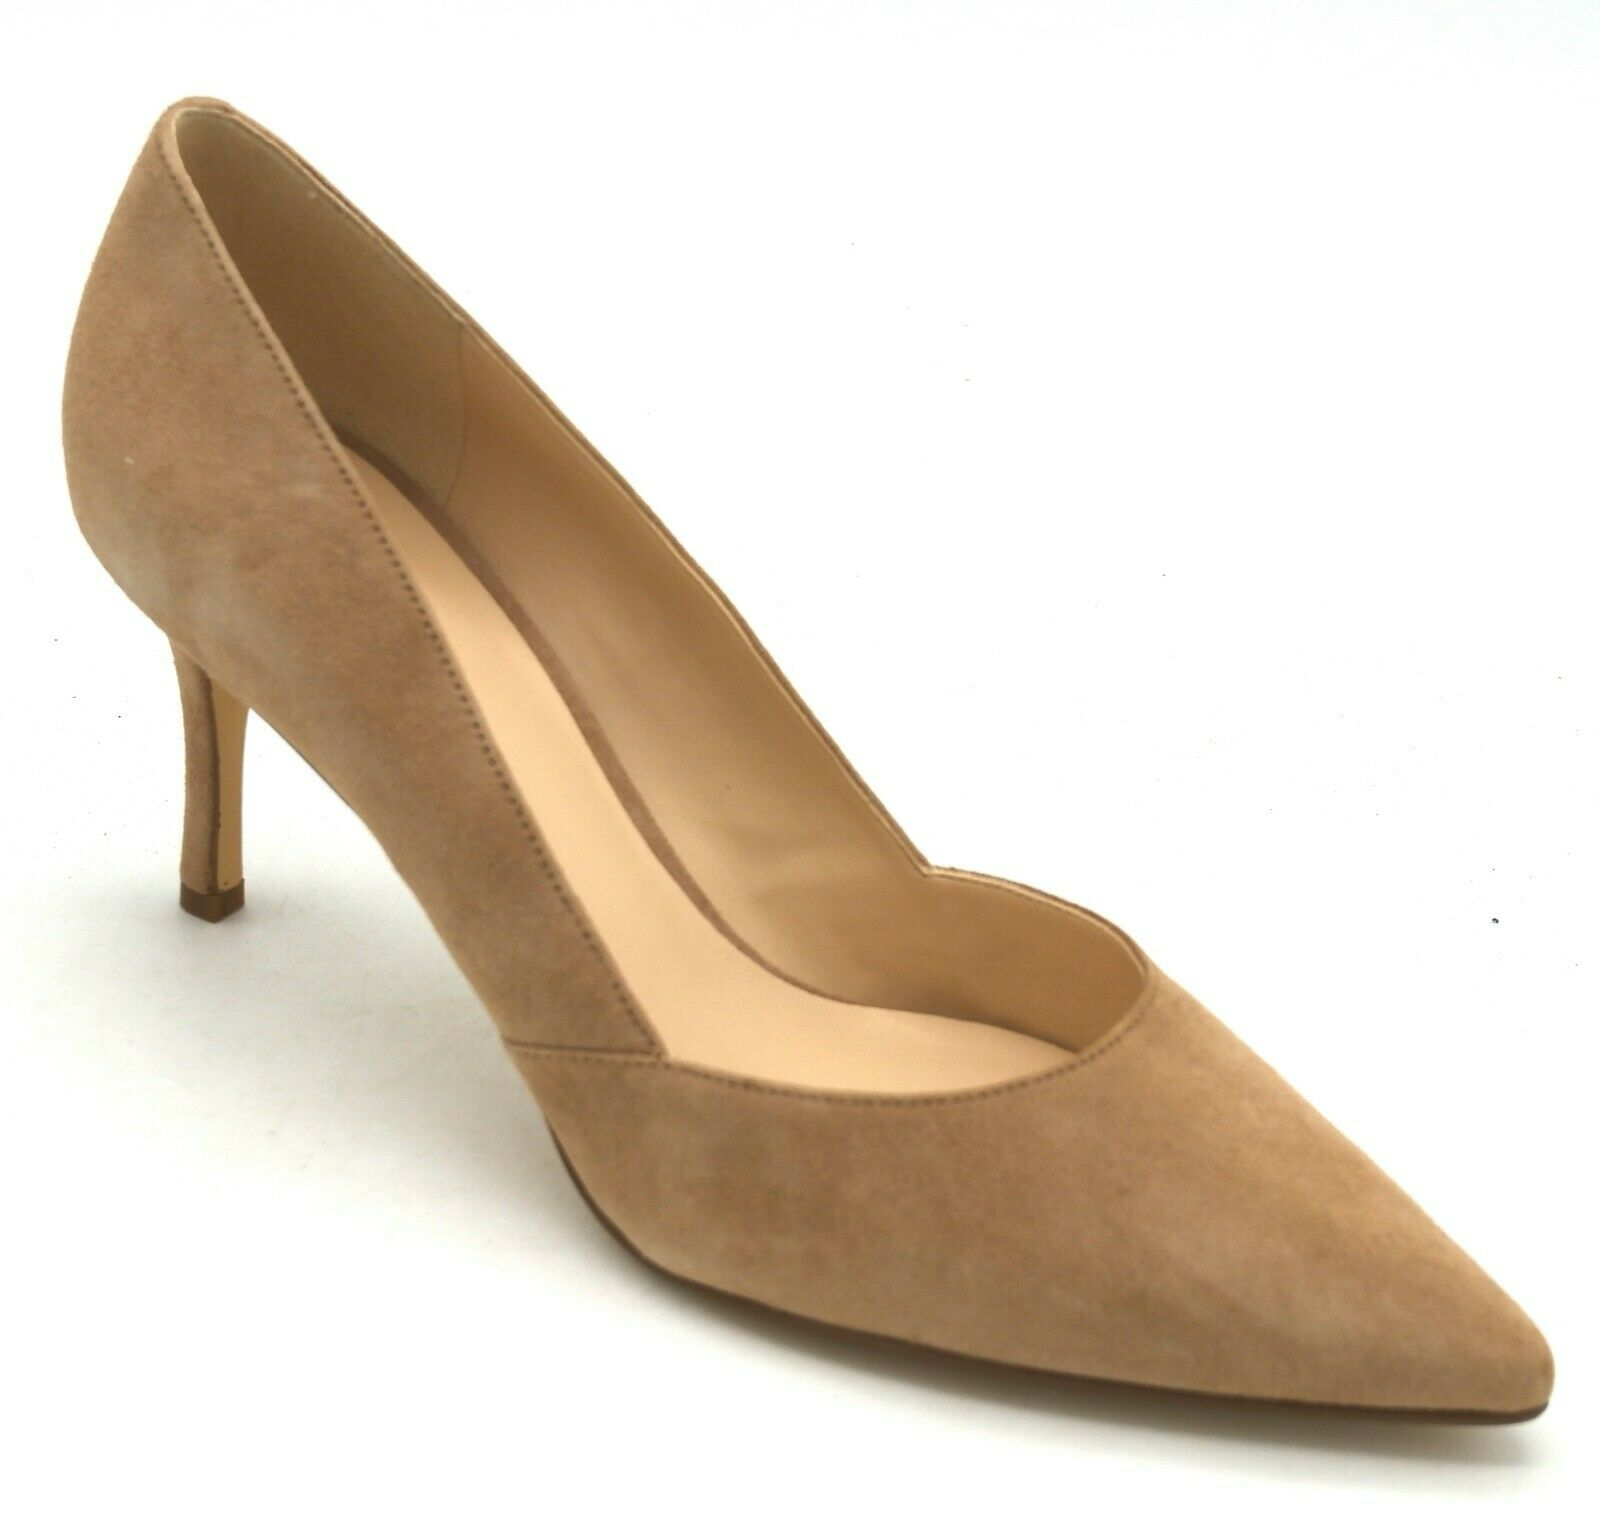 J8158 New Women's Nine West Mine Natural Suede Pointy Toe Heel 8.5 M